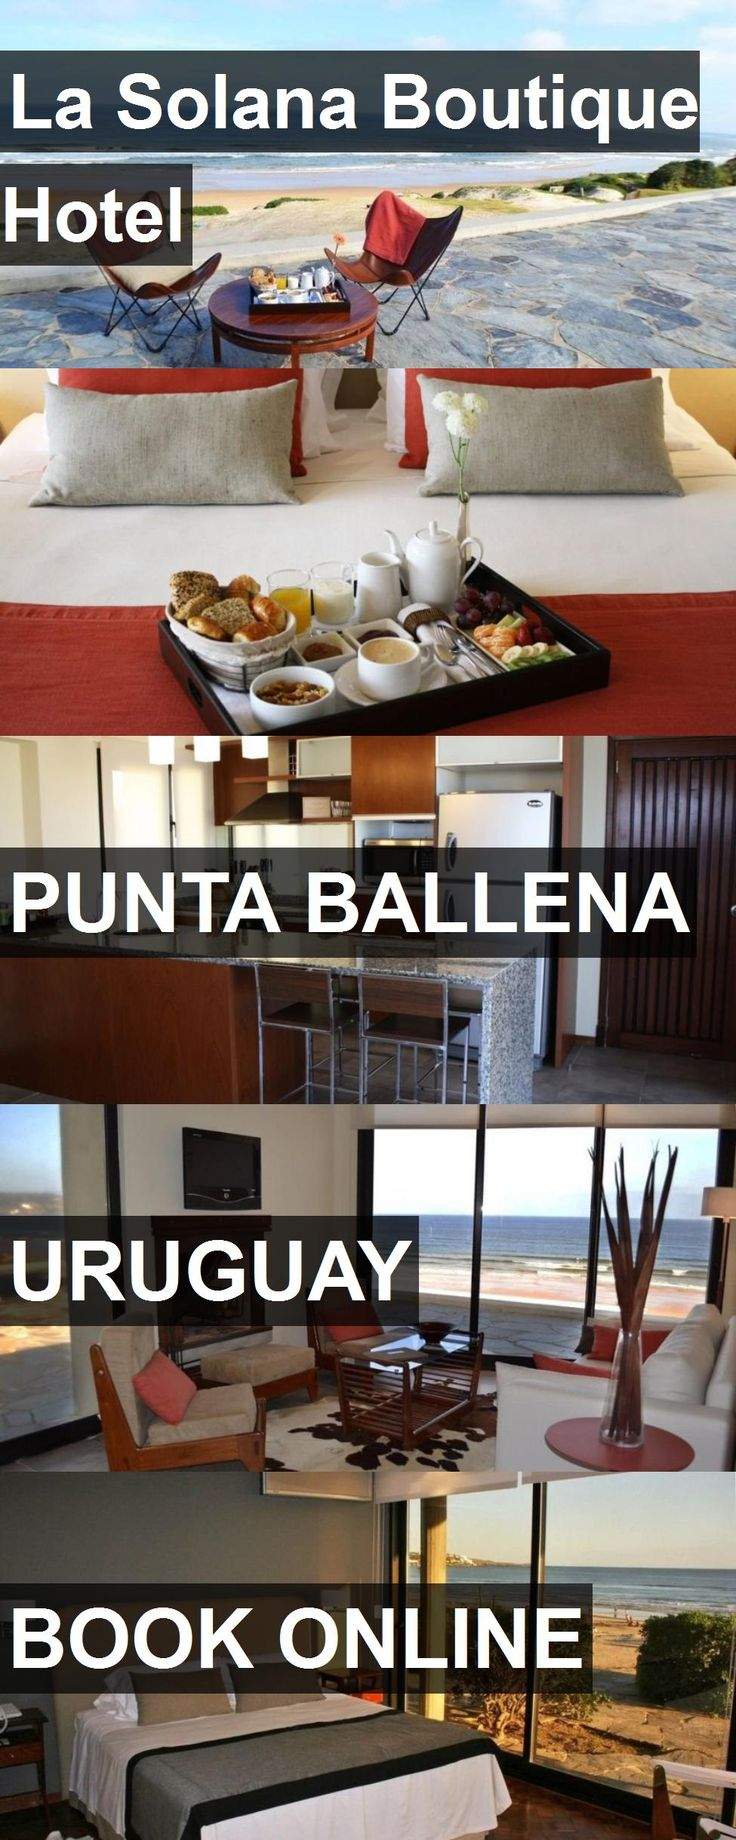 Hotel La Solana Boutique Hotel in Punta Ballena, Uruguay. For more information, photos, reviews and best prices please follow the link. #Uruguay #PuntaBallena #LaSolanaBoutiqueHotel #hotel #travel #vacation